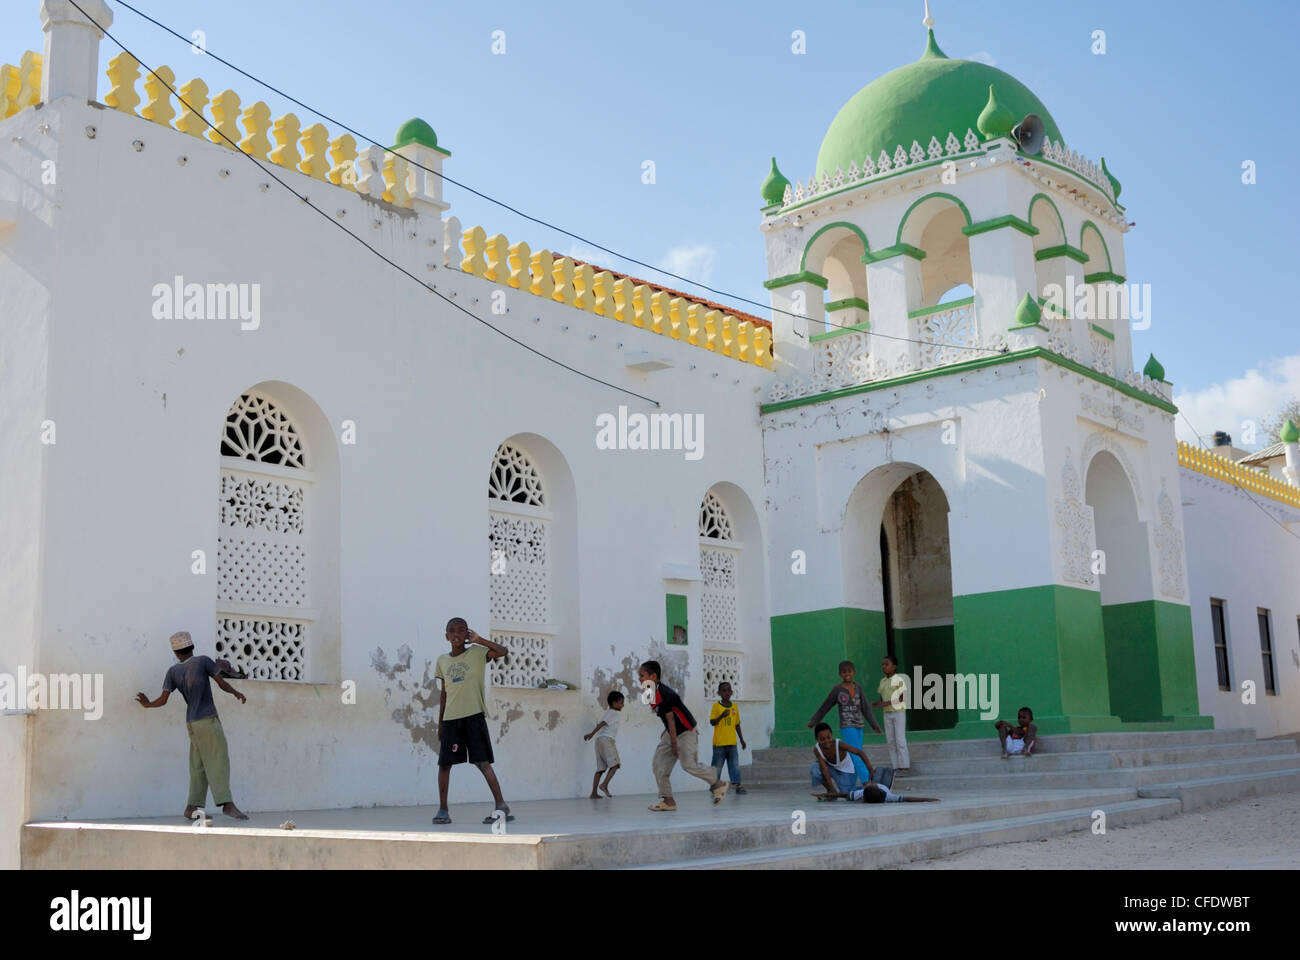 The Great Mosque, Old Town, UNESCO World Heritage Site, Lamu Island, Kenya, East Africa, Africa Stock Photo